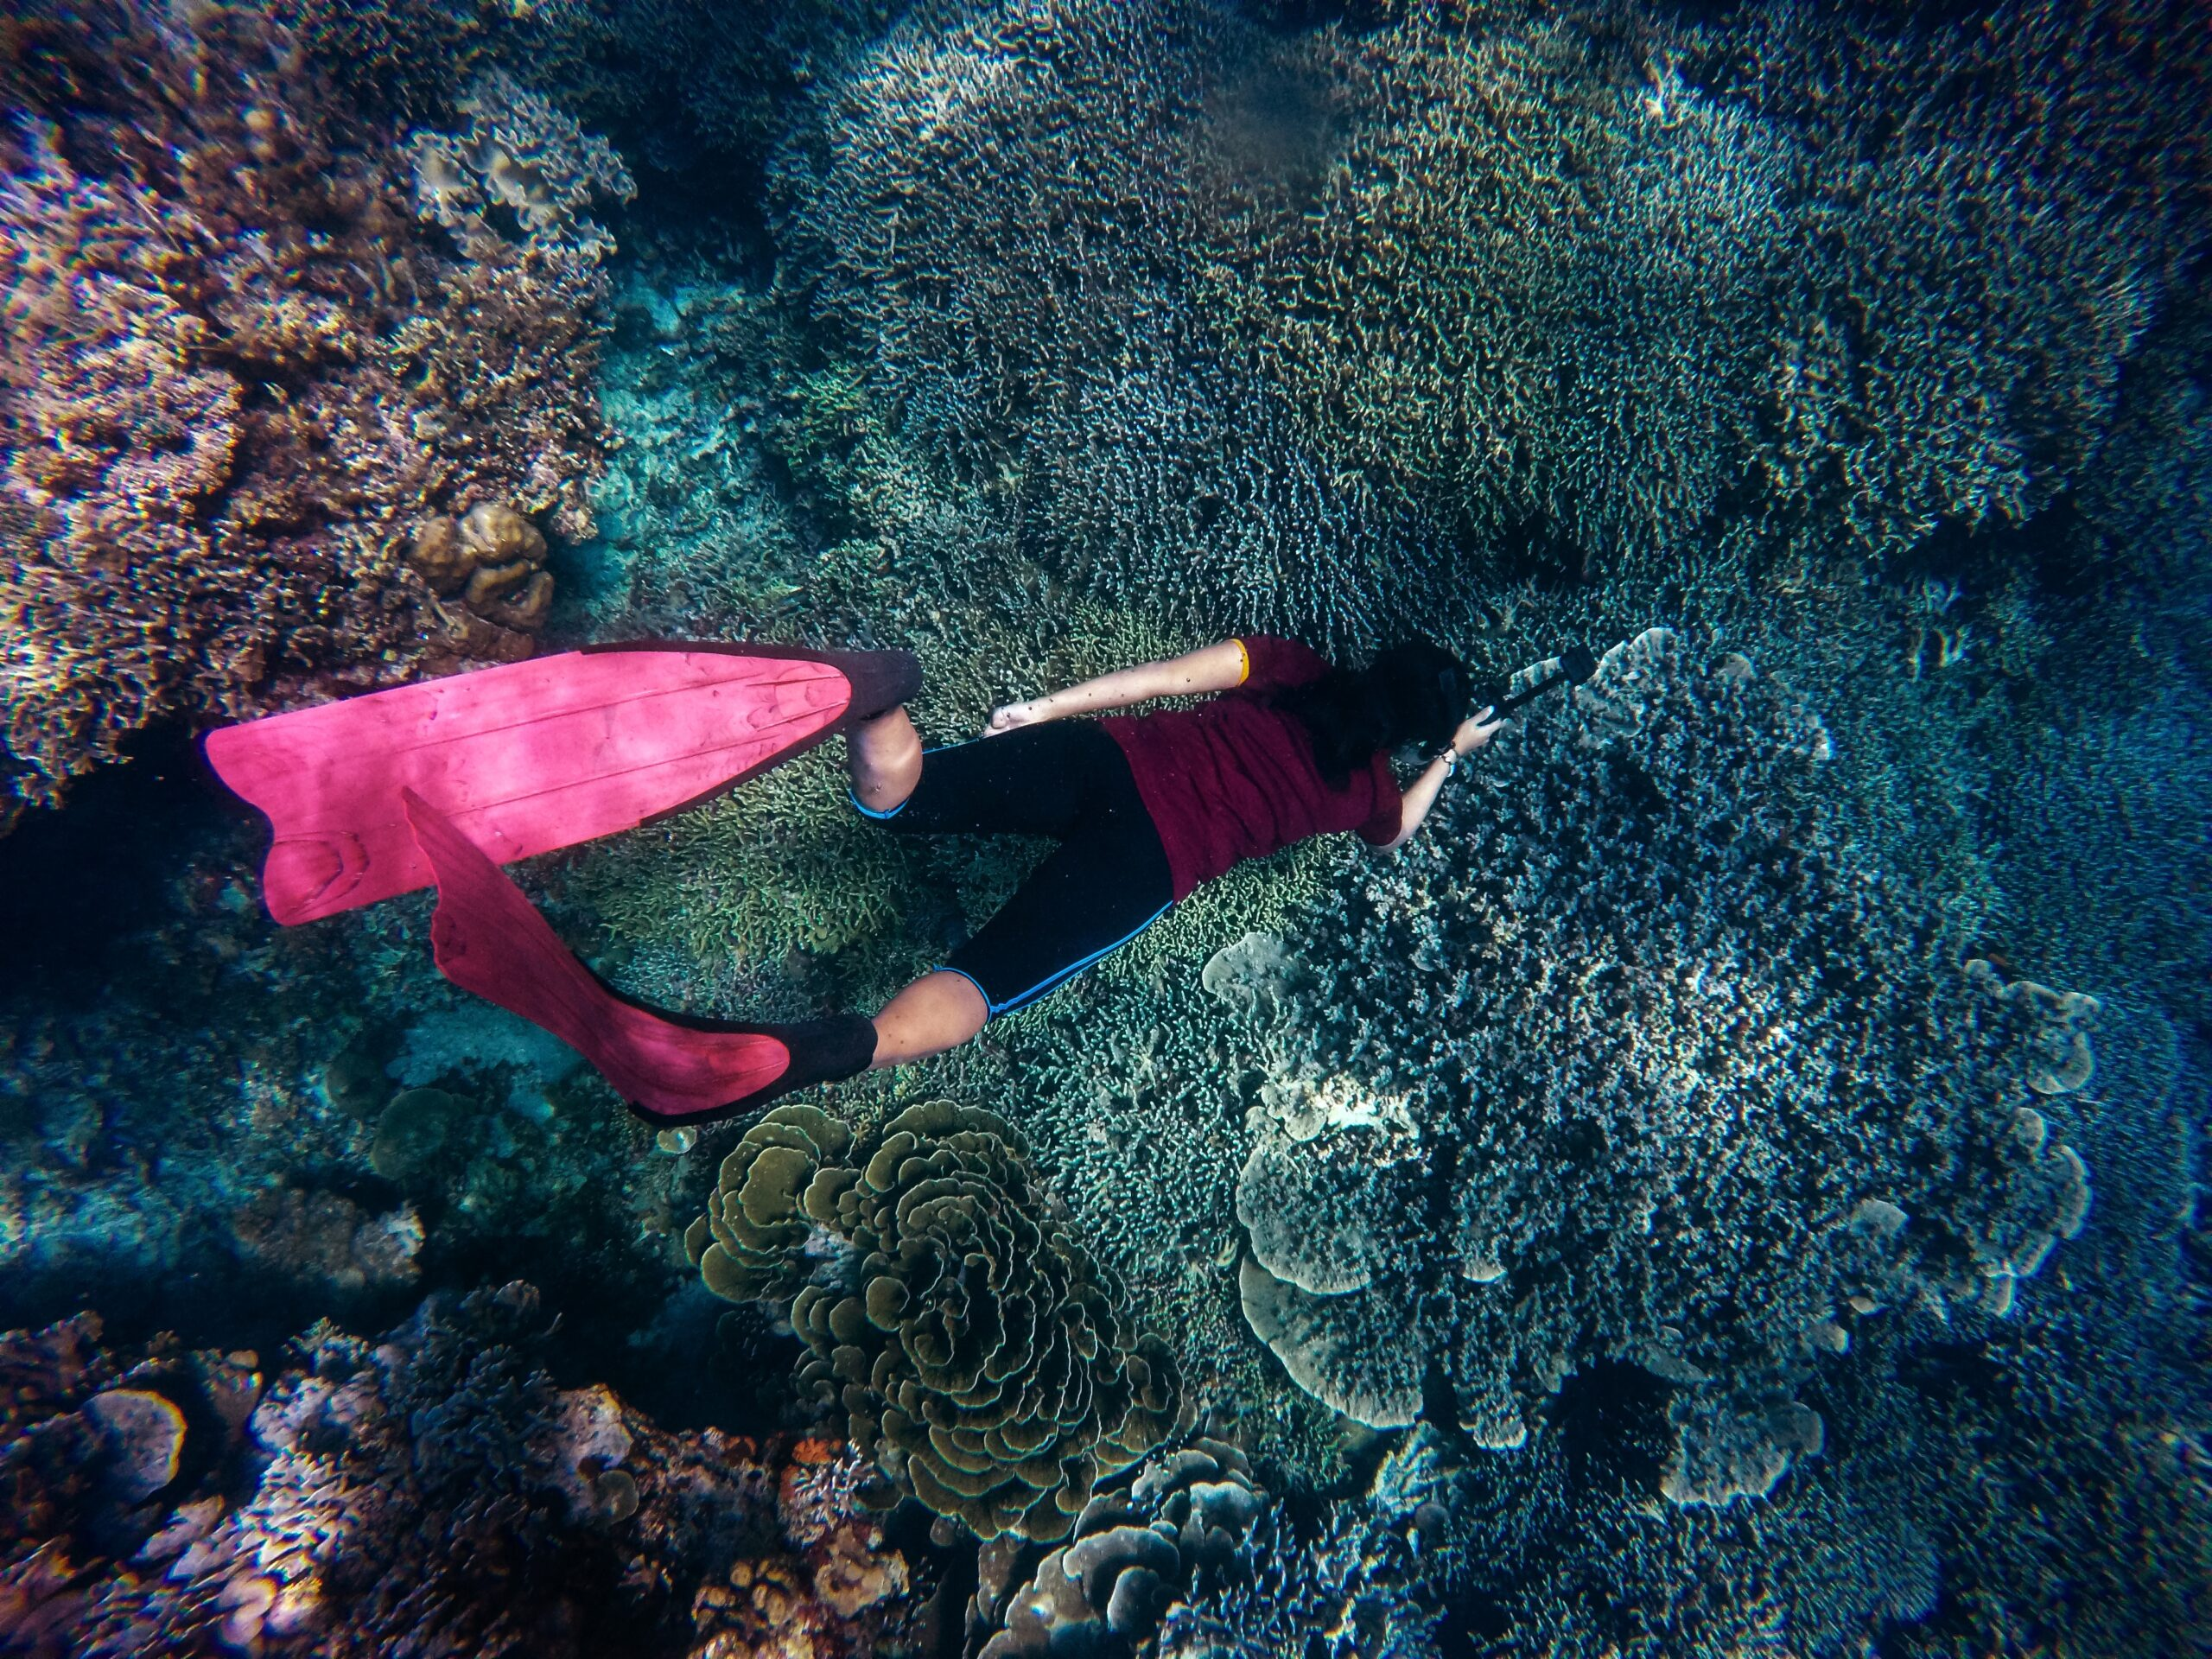 Snorkeling with beautiful corals